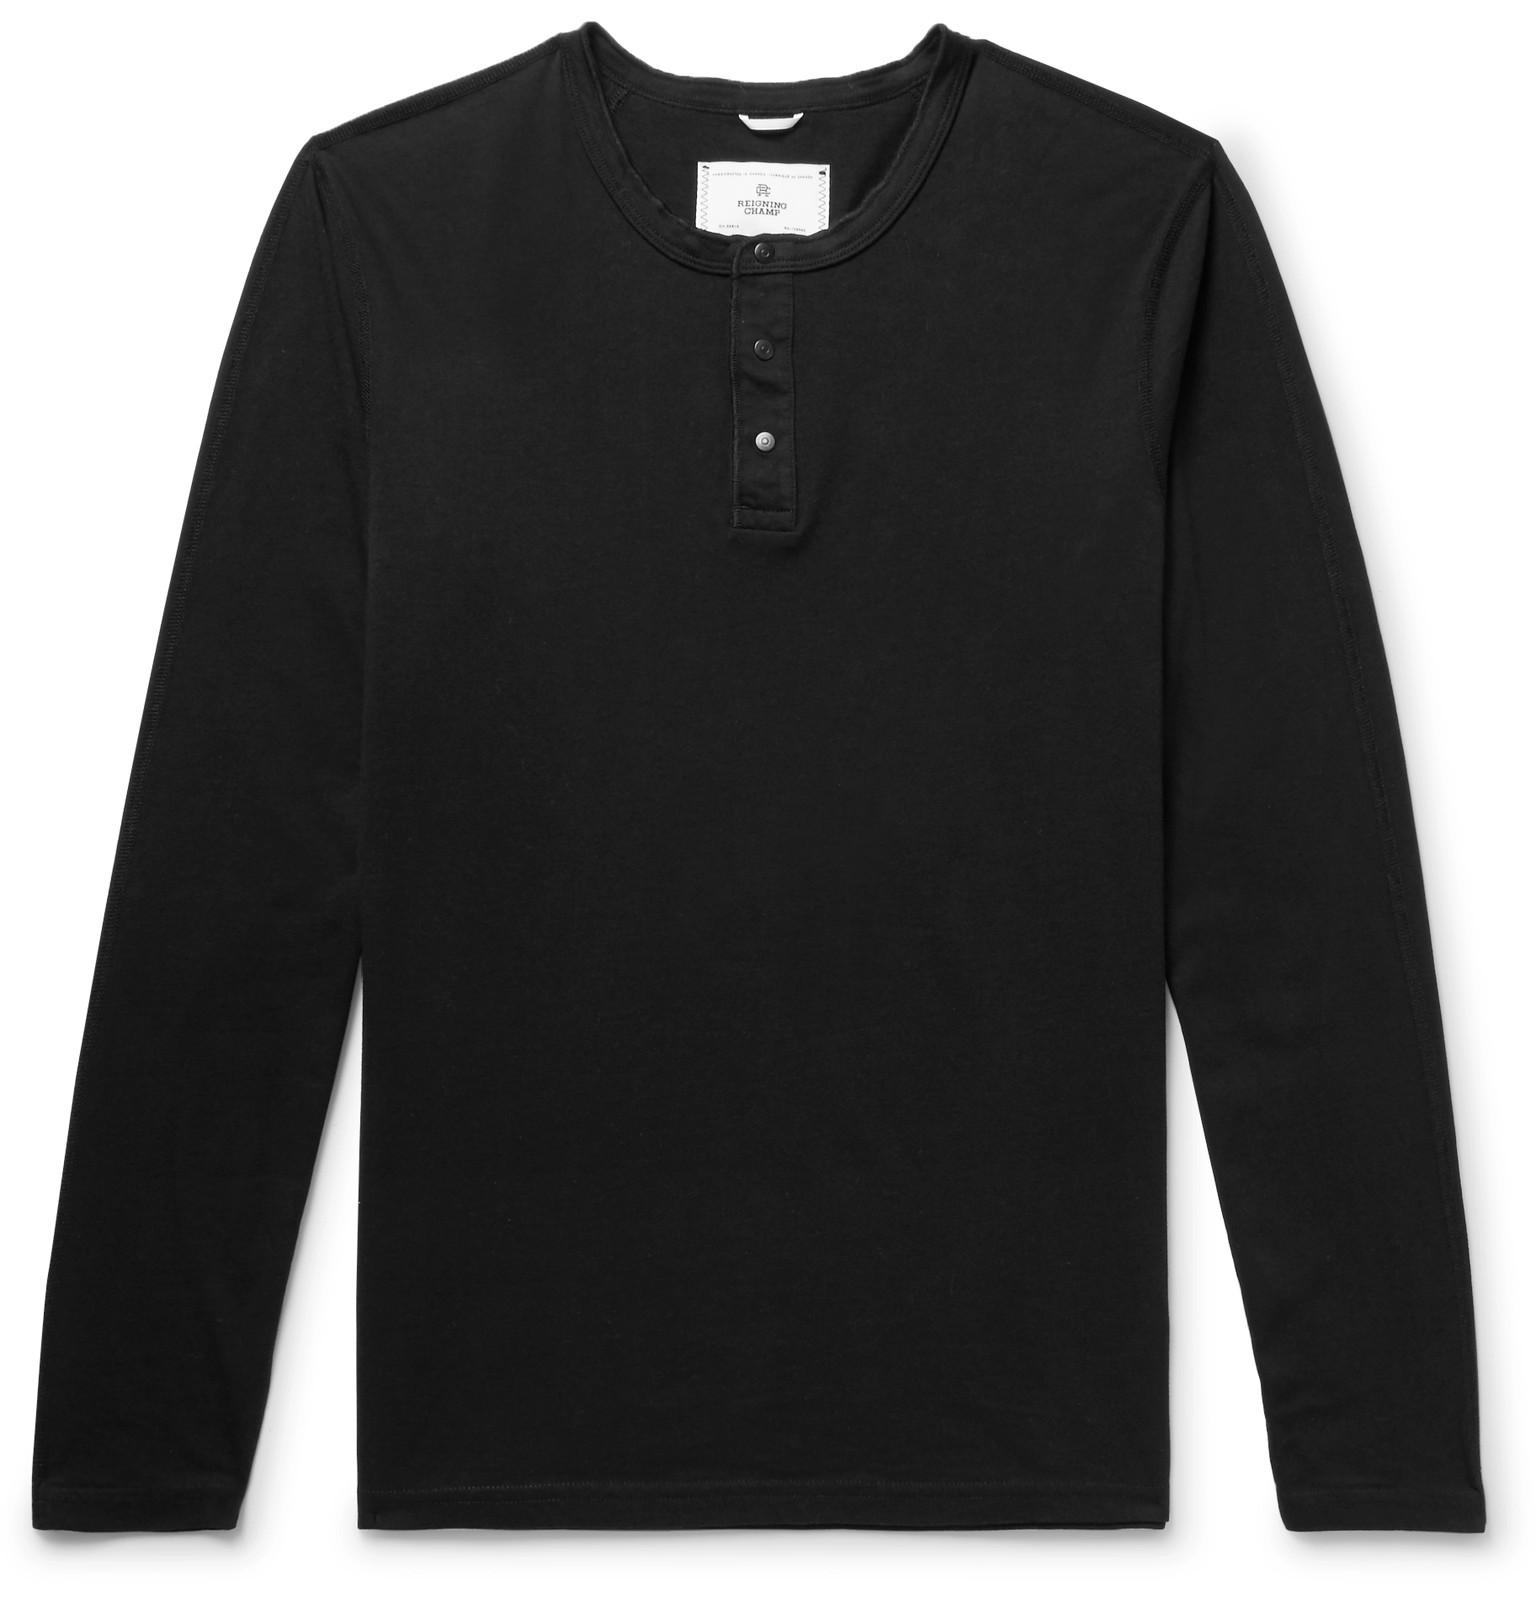 Reigning Champ Ring-spun Cotton-jersey Henley T-shirt - Black